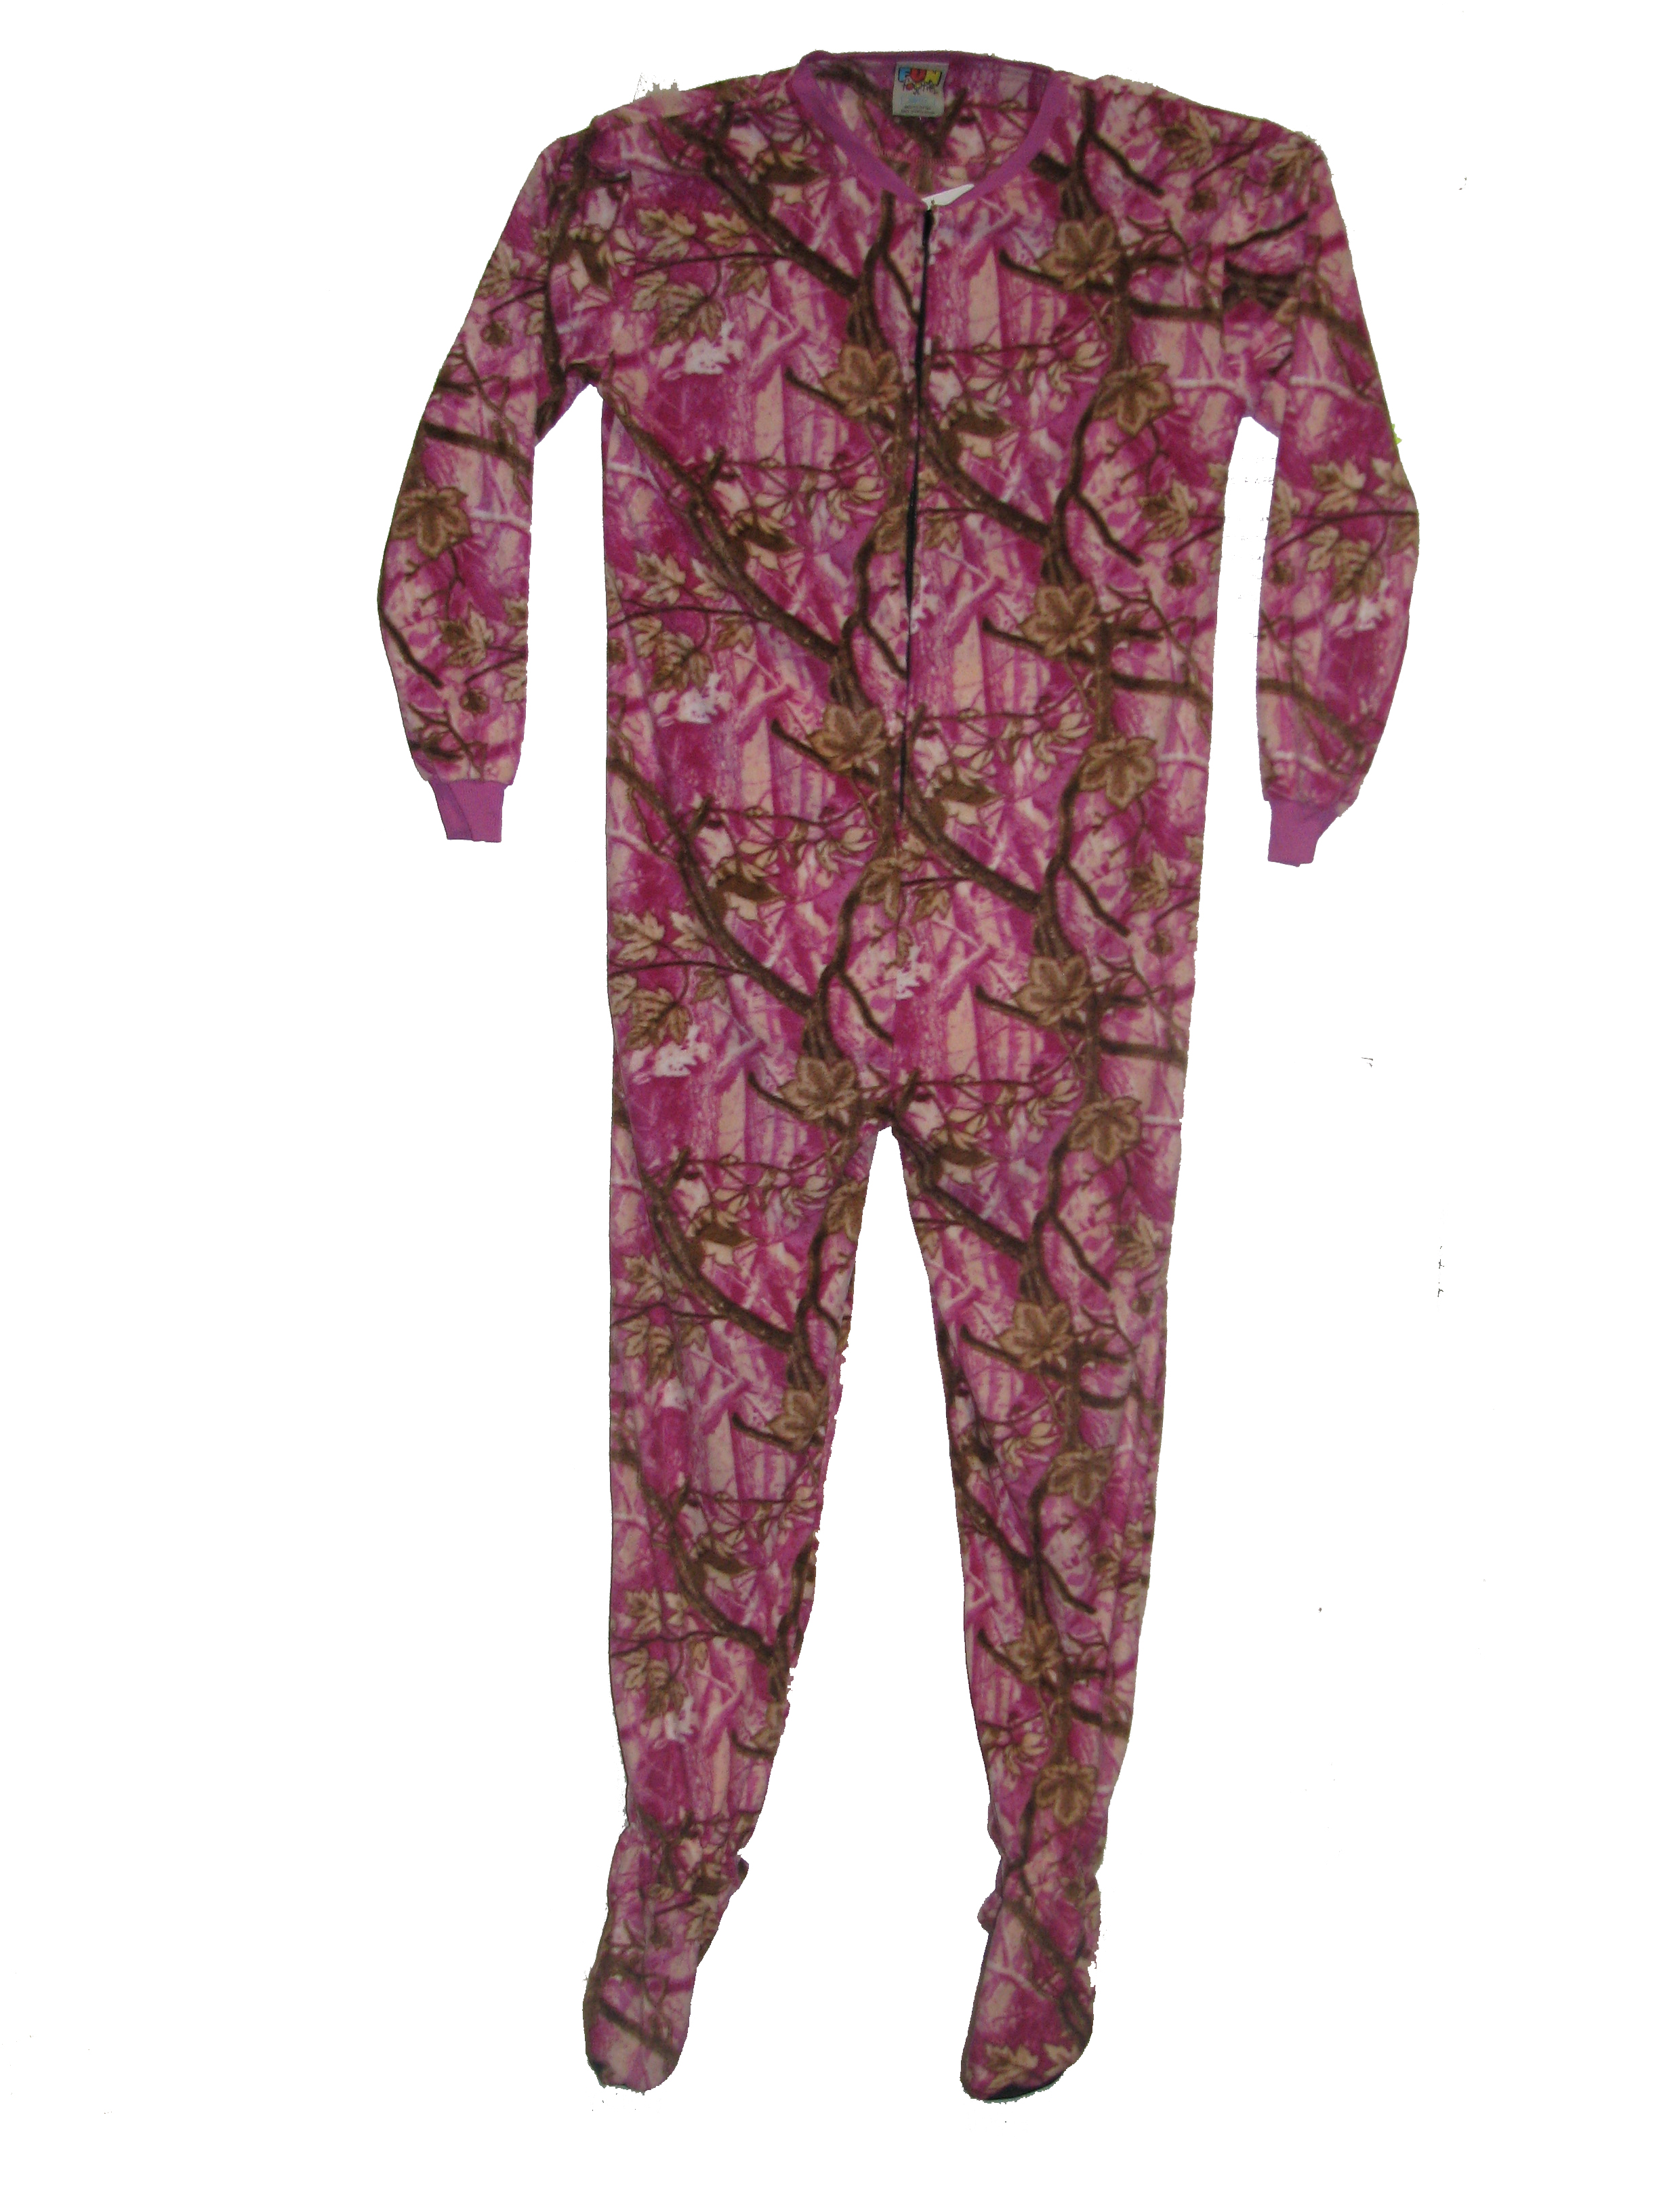 Pajama Fun Prints Footed One Piece Pajamas- Pink Forest Real